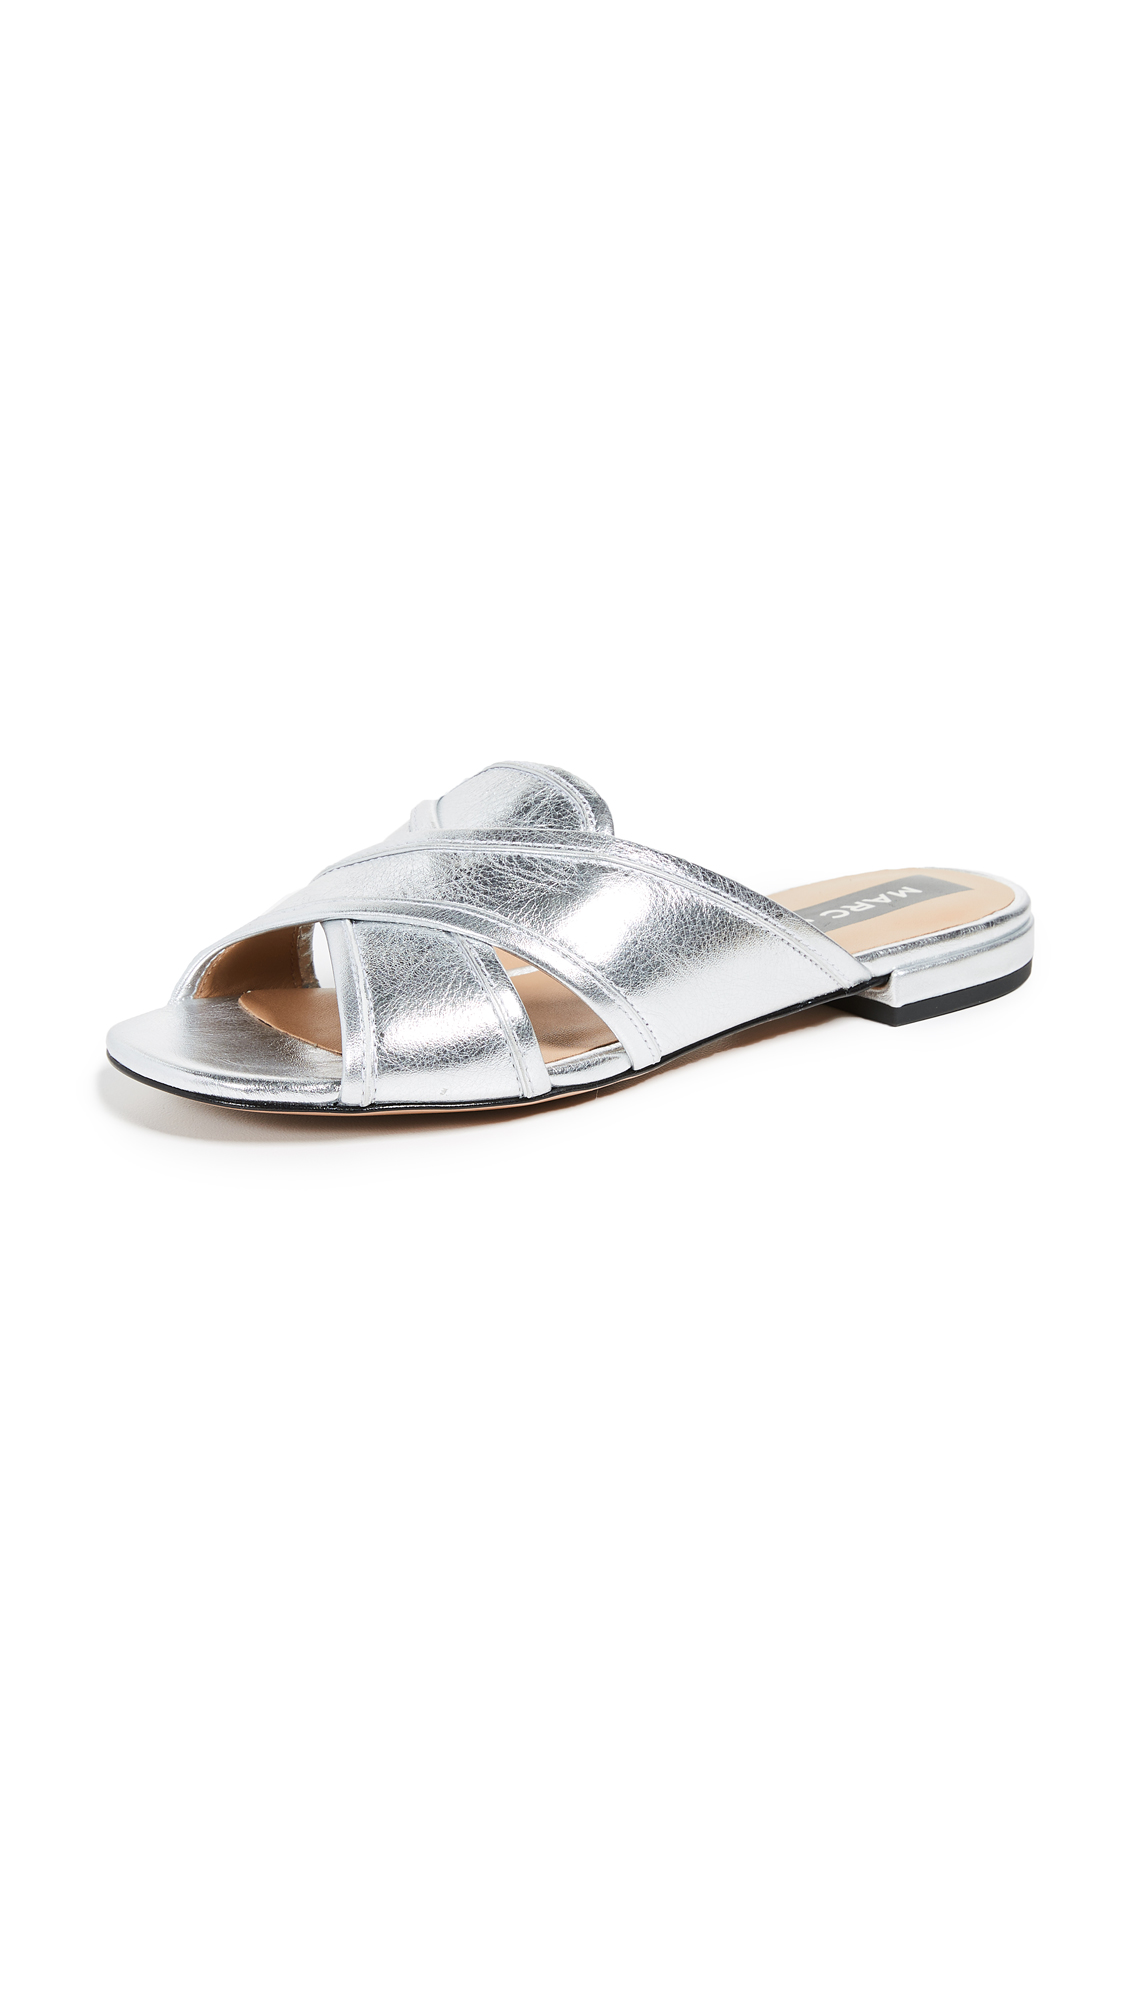 Photo of Marc Jacobs Aurora Flat Sandals - buy Marc Jacobs footwear online